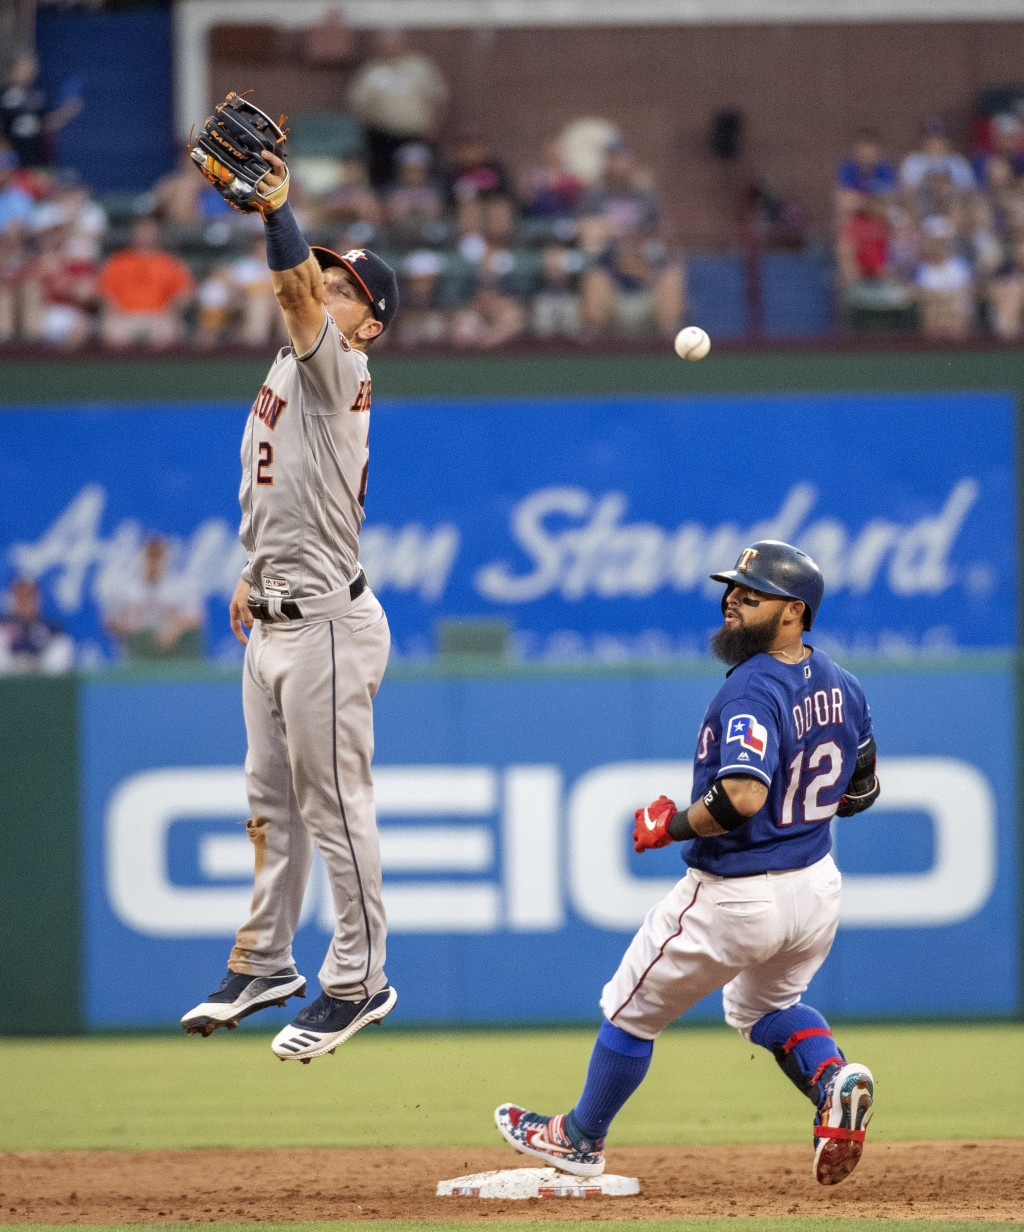 Houston Astros shortstop Alex Bregman (2) misses the relay throw as Texas Rangers' Rougned Odor (12) cruises into second with a double during the thir...